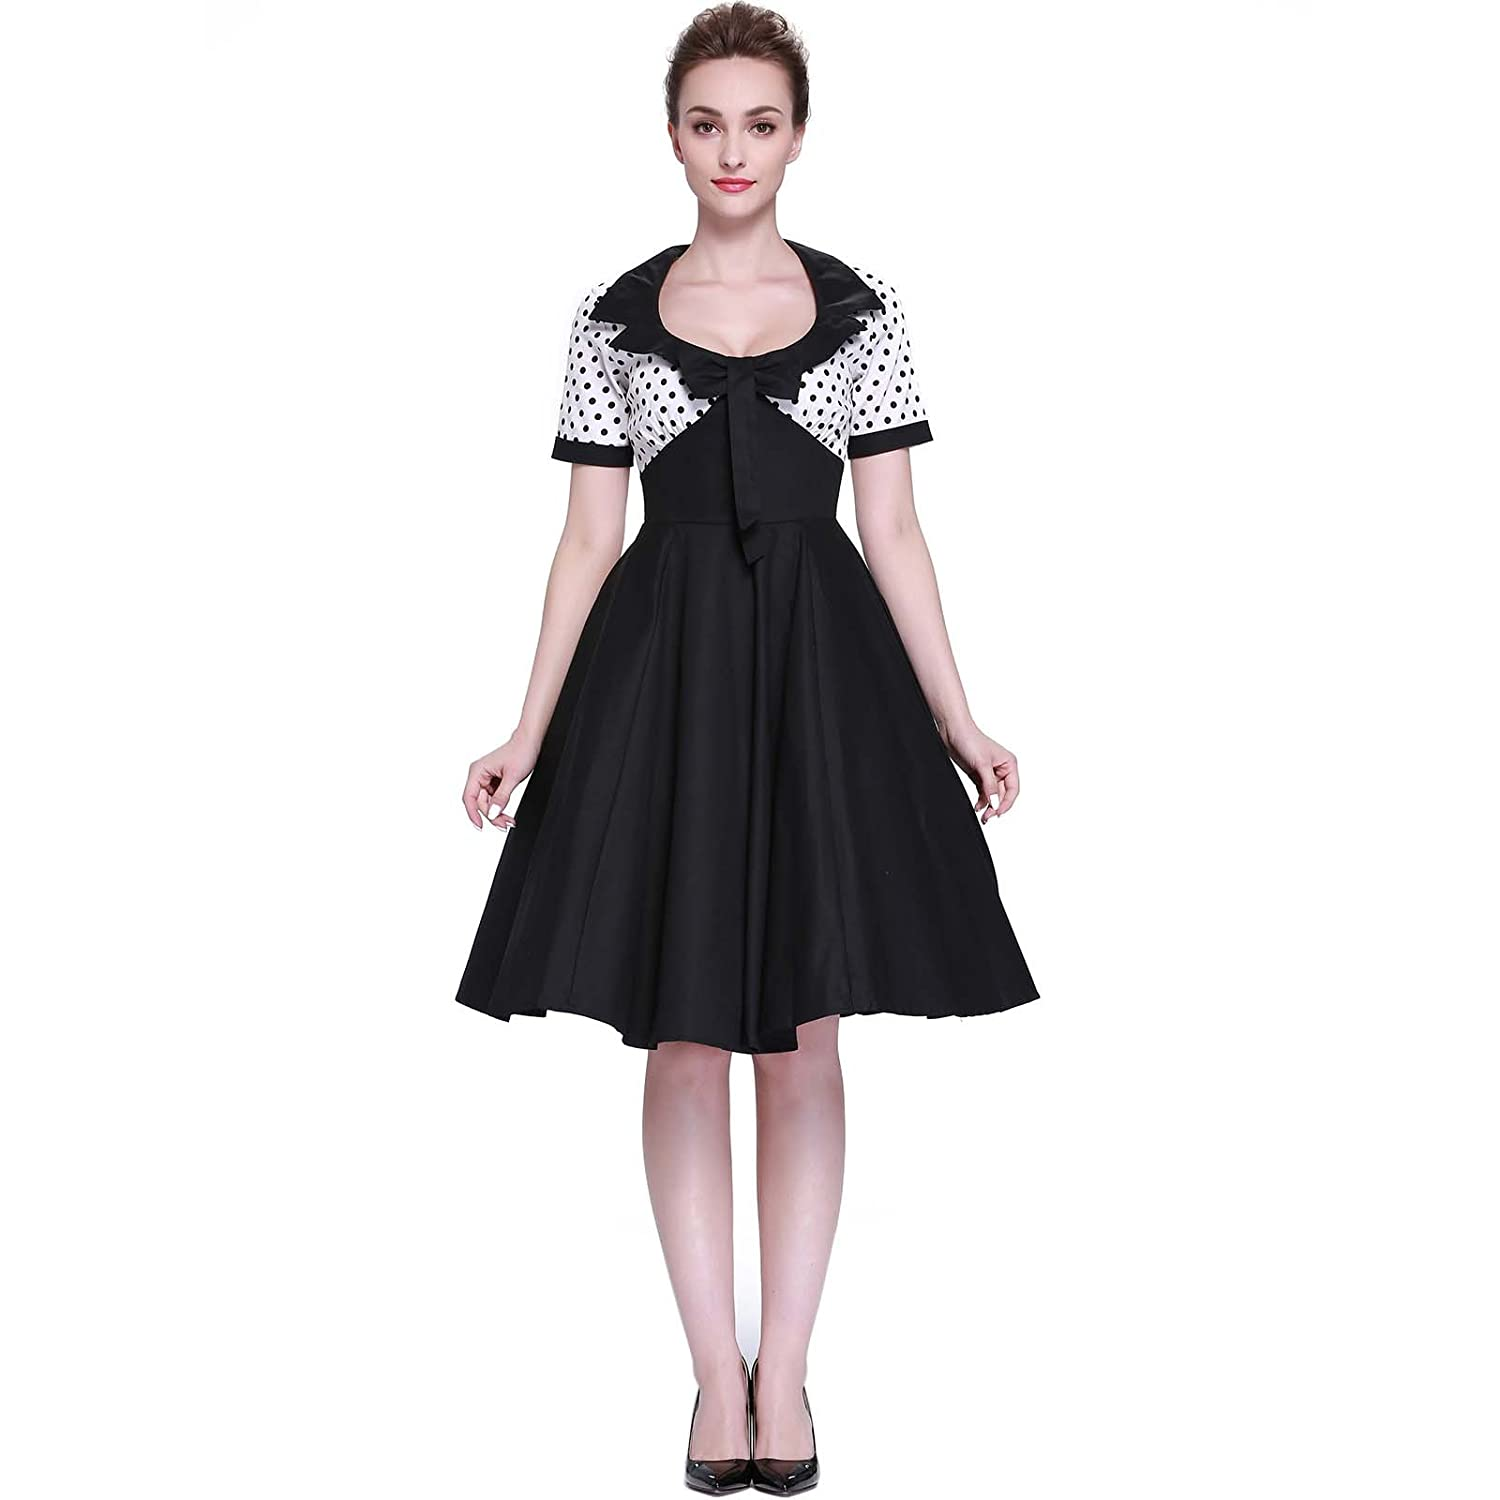 Vintage Inspired Halloween Costumes Heroecol Womens Vintage 1950s Dresses Square Neck Bow Short Sleeve 50s 60s Style Retro Swing Cotton Dress $20.59 AT vintagedancer.com